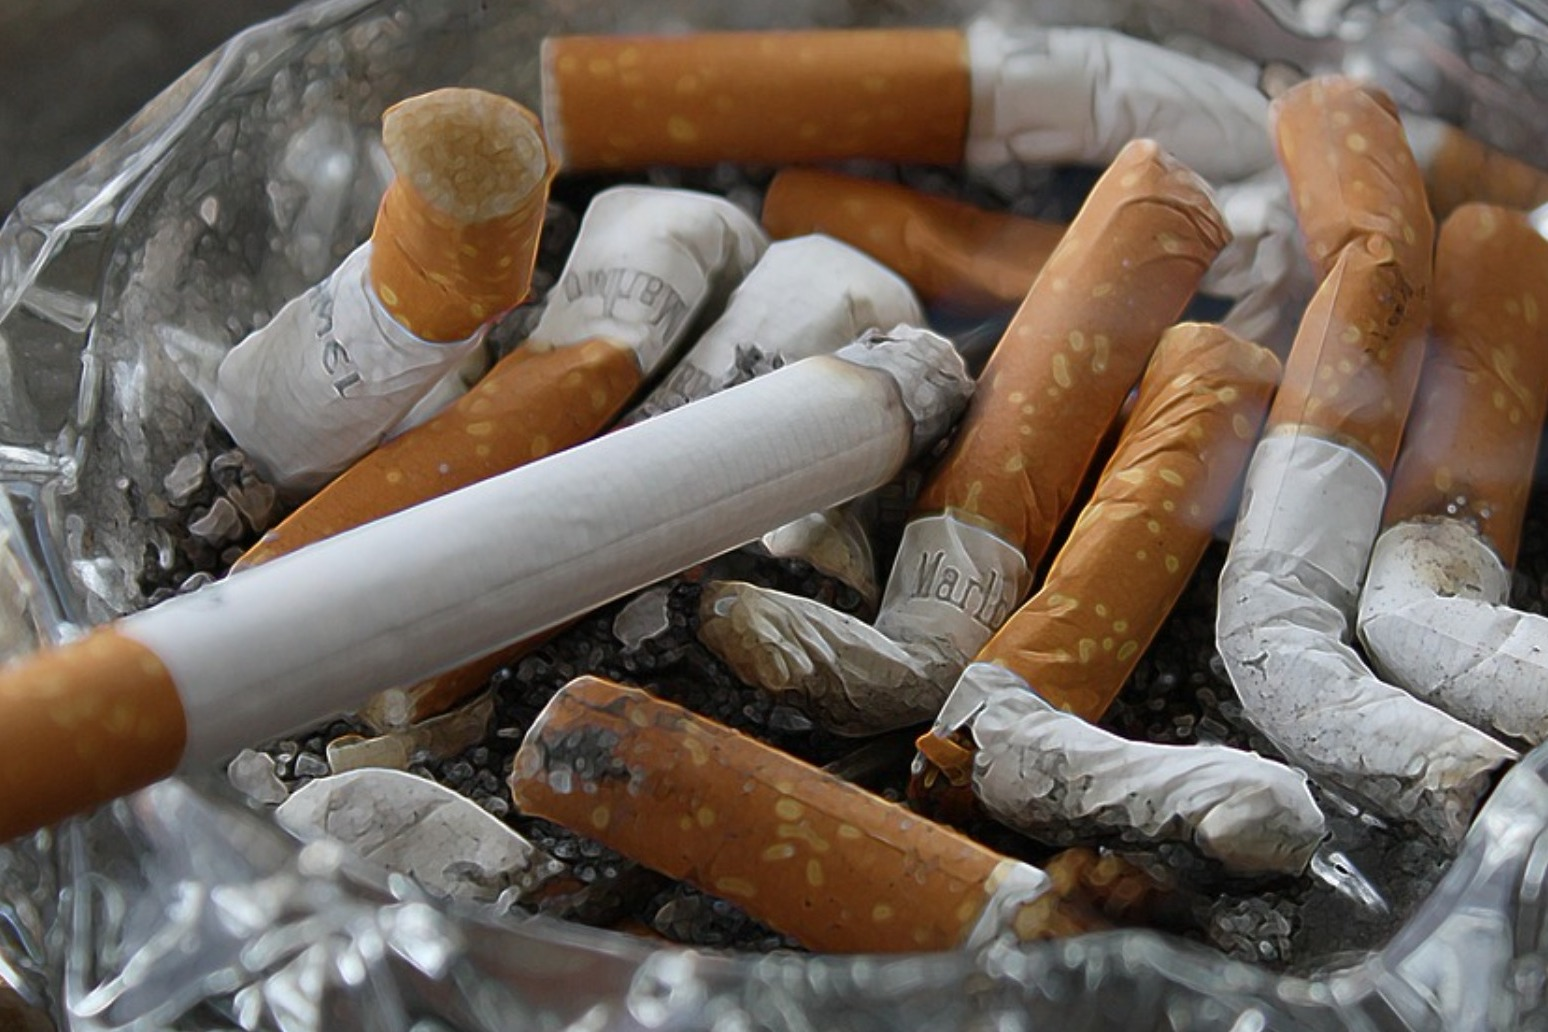 At least three out of five people who try a cigarette become daily smokers